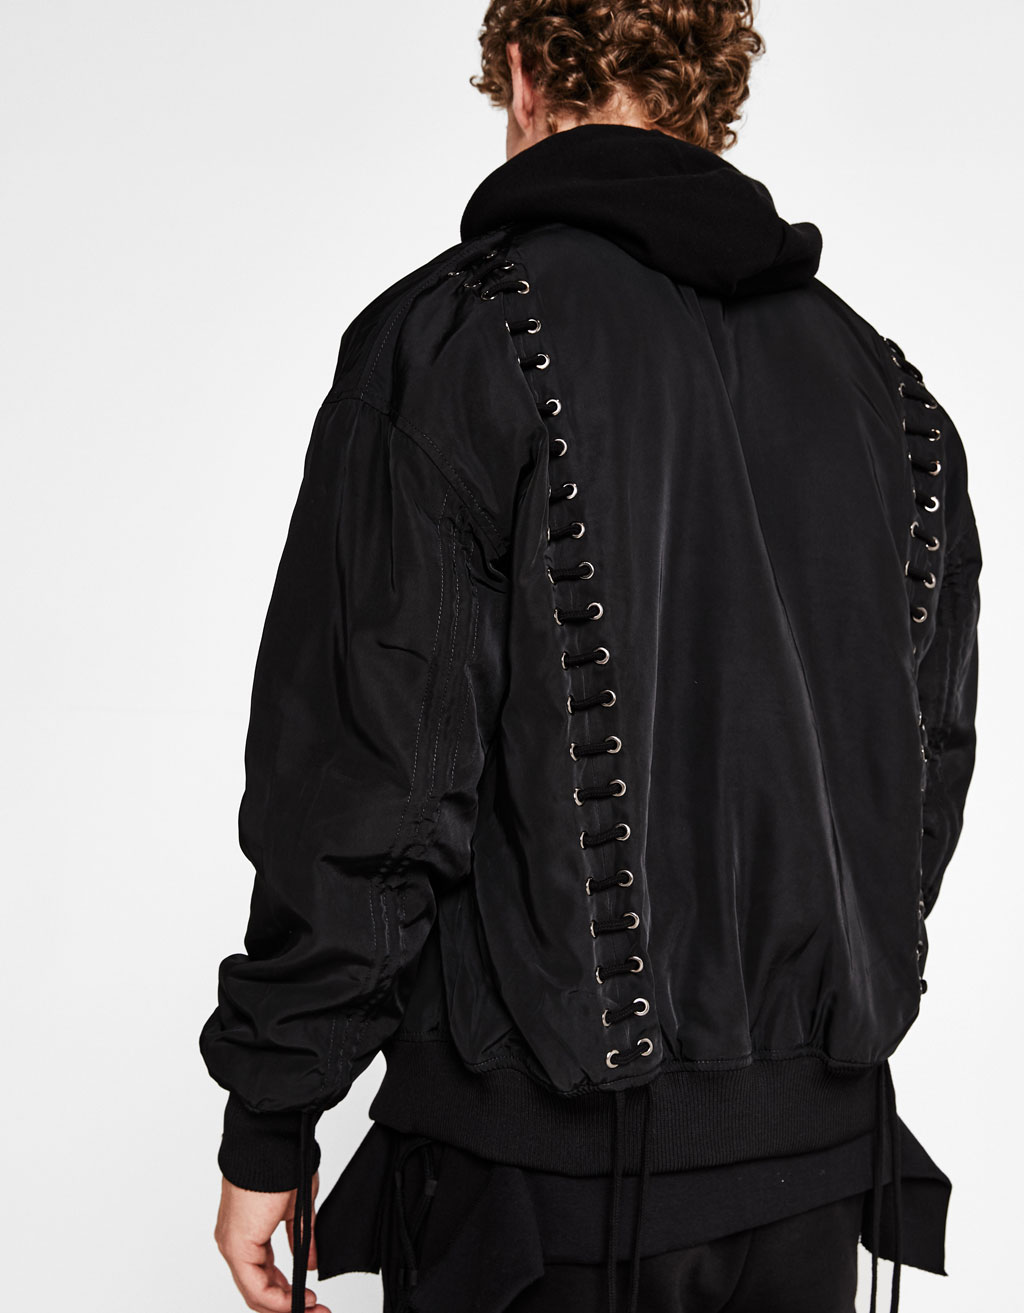 Bomber jacket with laces